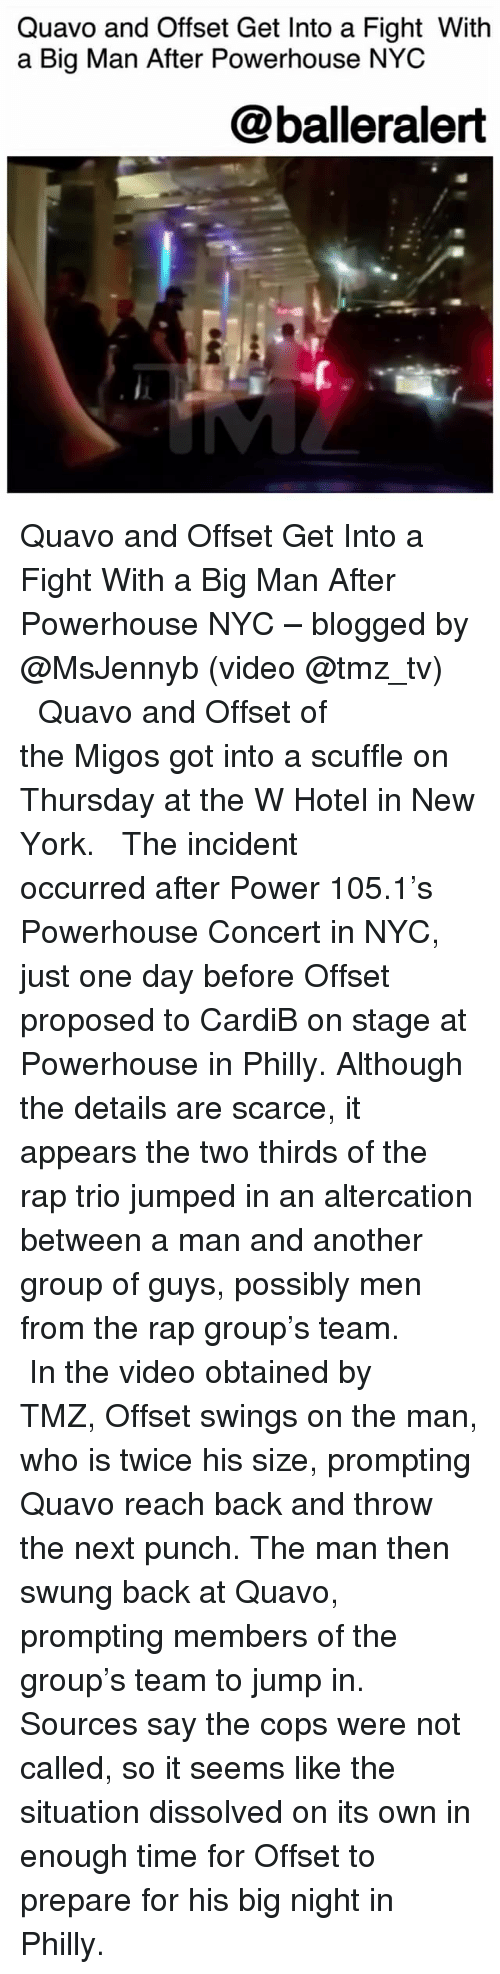 altercation: Quavo and Offset Get Into a Fight Witlh  a Big Man After Powerhouse NYC  @balleralert Quavo and Offset Get Into a Fight With a Big Man After Powerhouse NYC – blogged by @MsJennyb (video @tmz_tv) ⠀⠀⠀⠀⠀⠀⠀ ⠀⠀⠀⠀⠀⠀⠀ Quavo and Offset of the Migos got into a scuffle on Thursday at the W Hotel in New York. ⠀⠀⠀⠀⠀⠀⠀ ⠀⠀⠀⠀⠀⠀⠀ The incident occurred after Power 105.1's Powerhouse Concert in NYC, just one day before Offset proposed to CardiB on stage at Powerhouse in Philly. Although the details are scarce, it appears the two thirds of the rap trio jumped in an altercation between a man and another group of guys, possibly men from the rap group's team. ⠀⠀⠀⠀⠀⠀⠀ ⠀⠀⠀⠀⠀⠀⠀ In the video obtained by TMZ, Offset swings on the man, who is twice his size, prompting Quavo reach back and throw the next punch. The man then swung back at Quavo, prompting members of the group's team to jump in. Sources say the cops were not called, so it seems like the situation dissolved on its own in enough time for Offset to prepare for his big night in Philly.